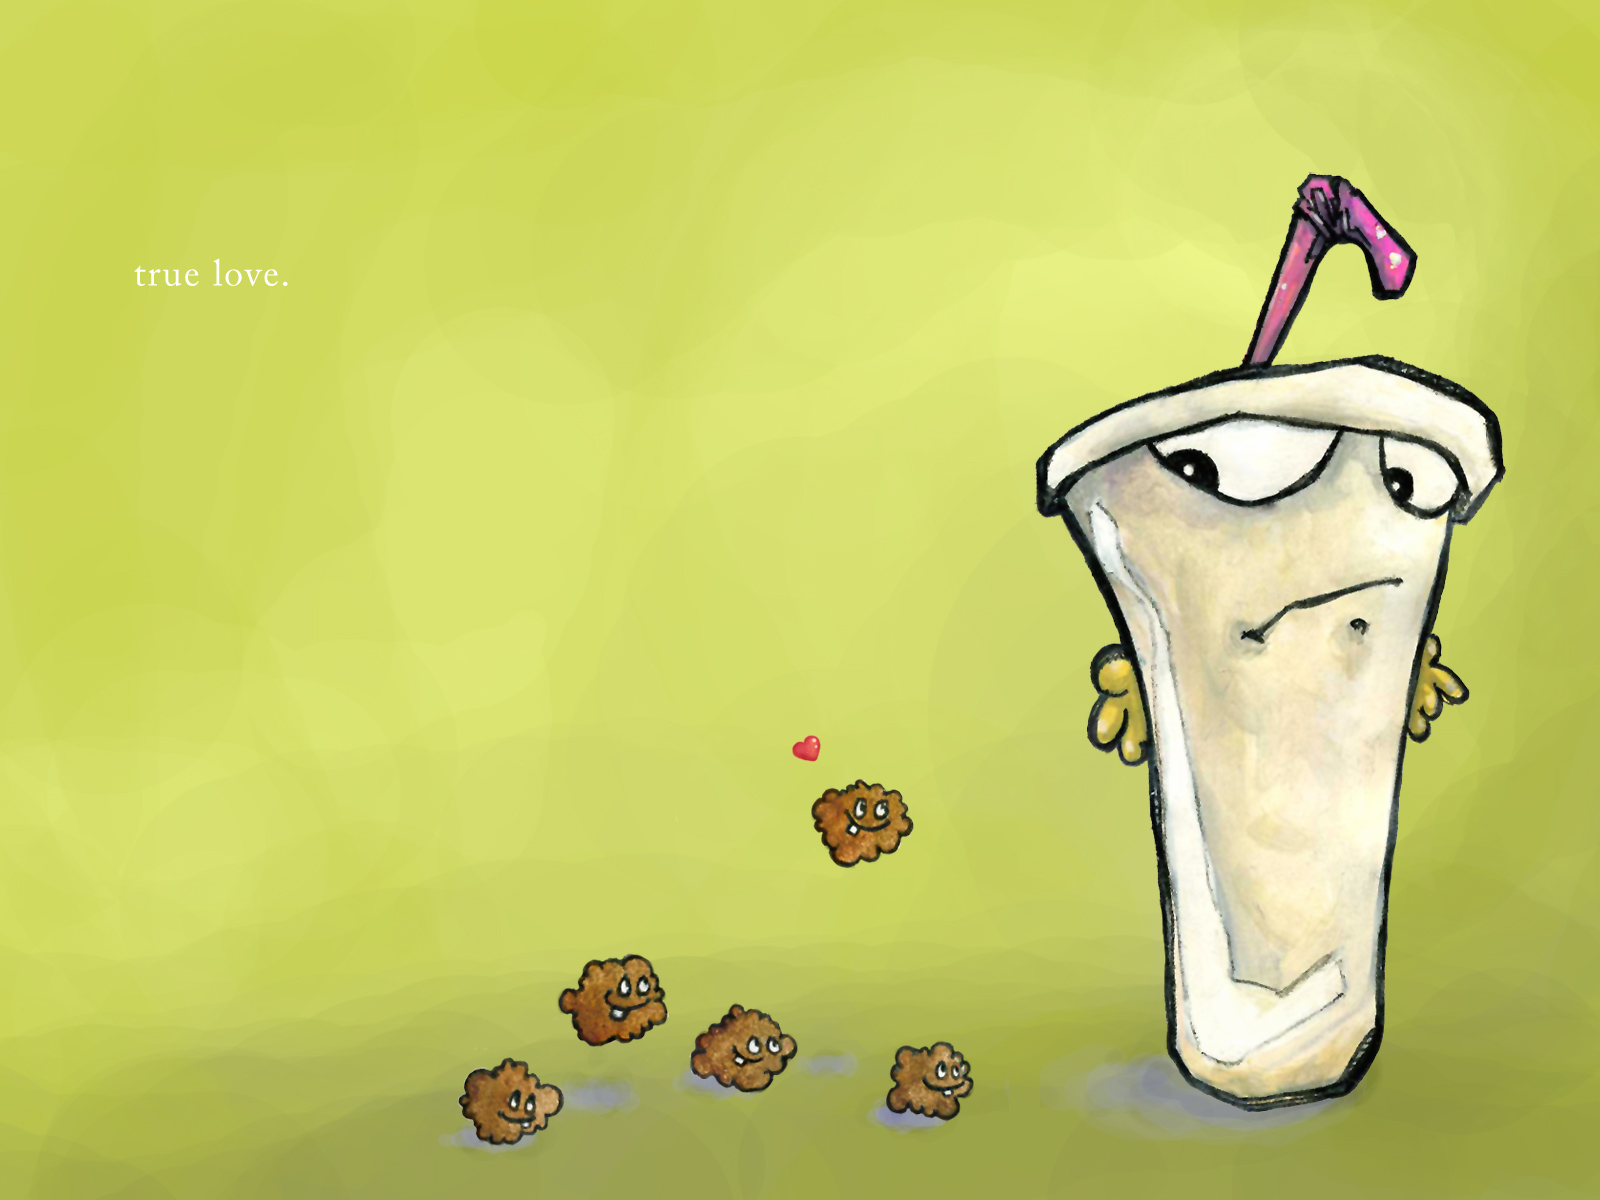 Cartoon - aqua teen hunger force Wallpaper